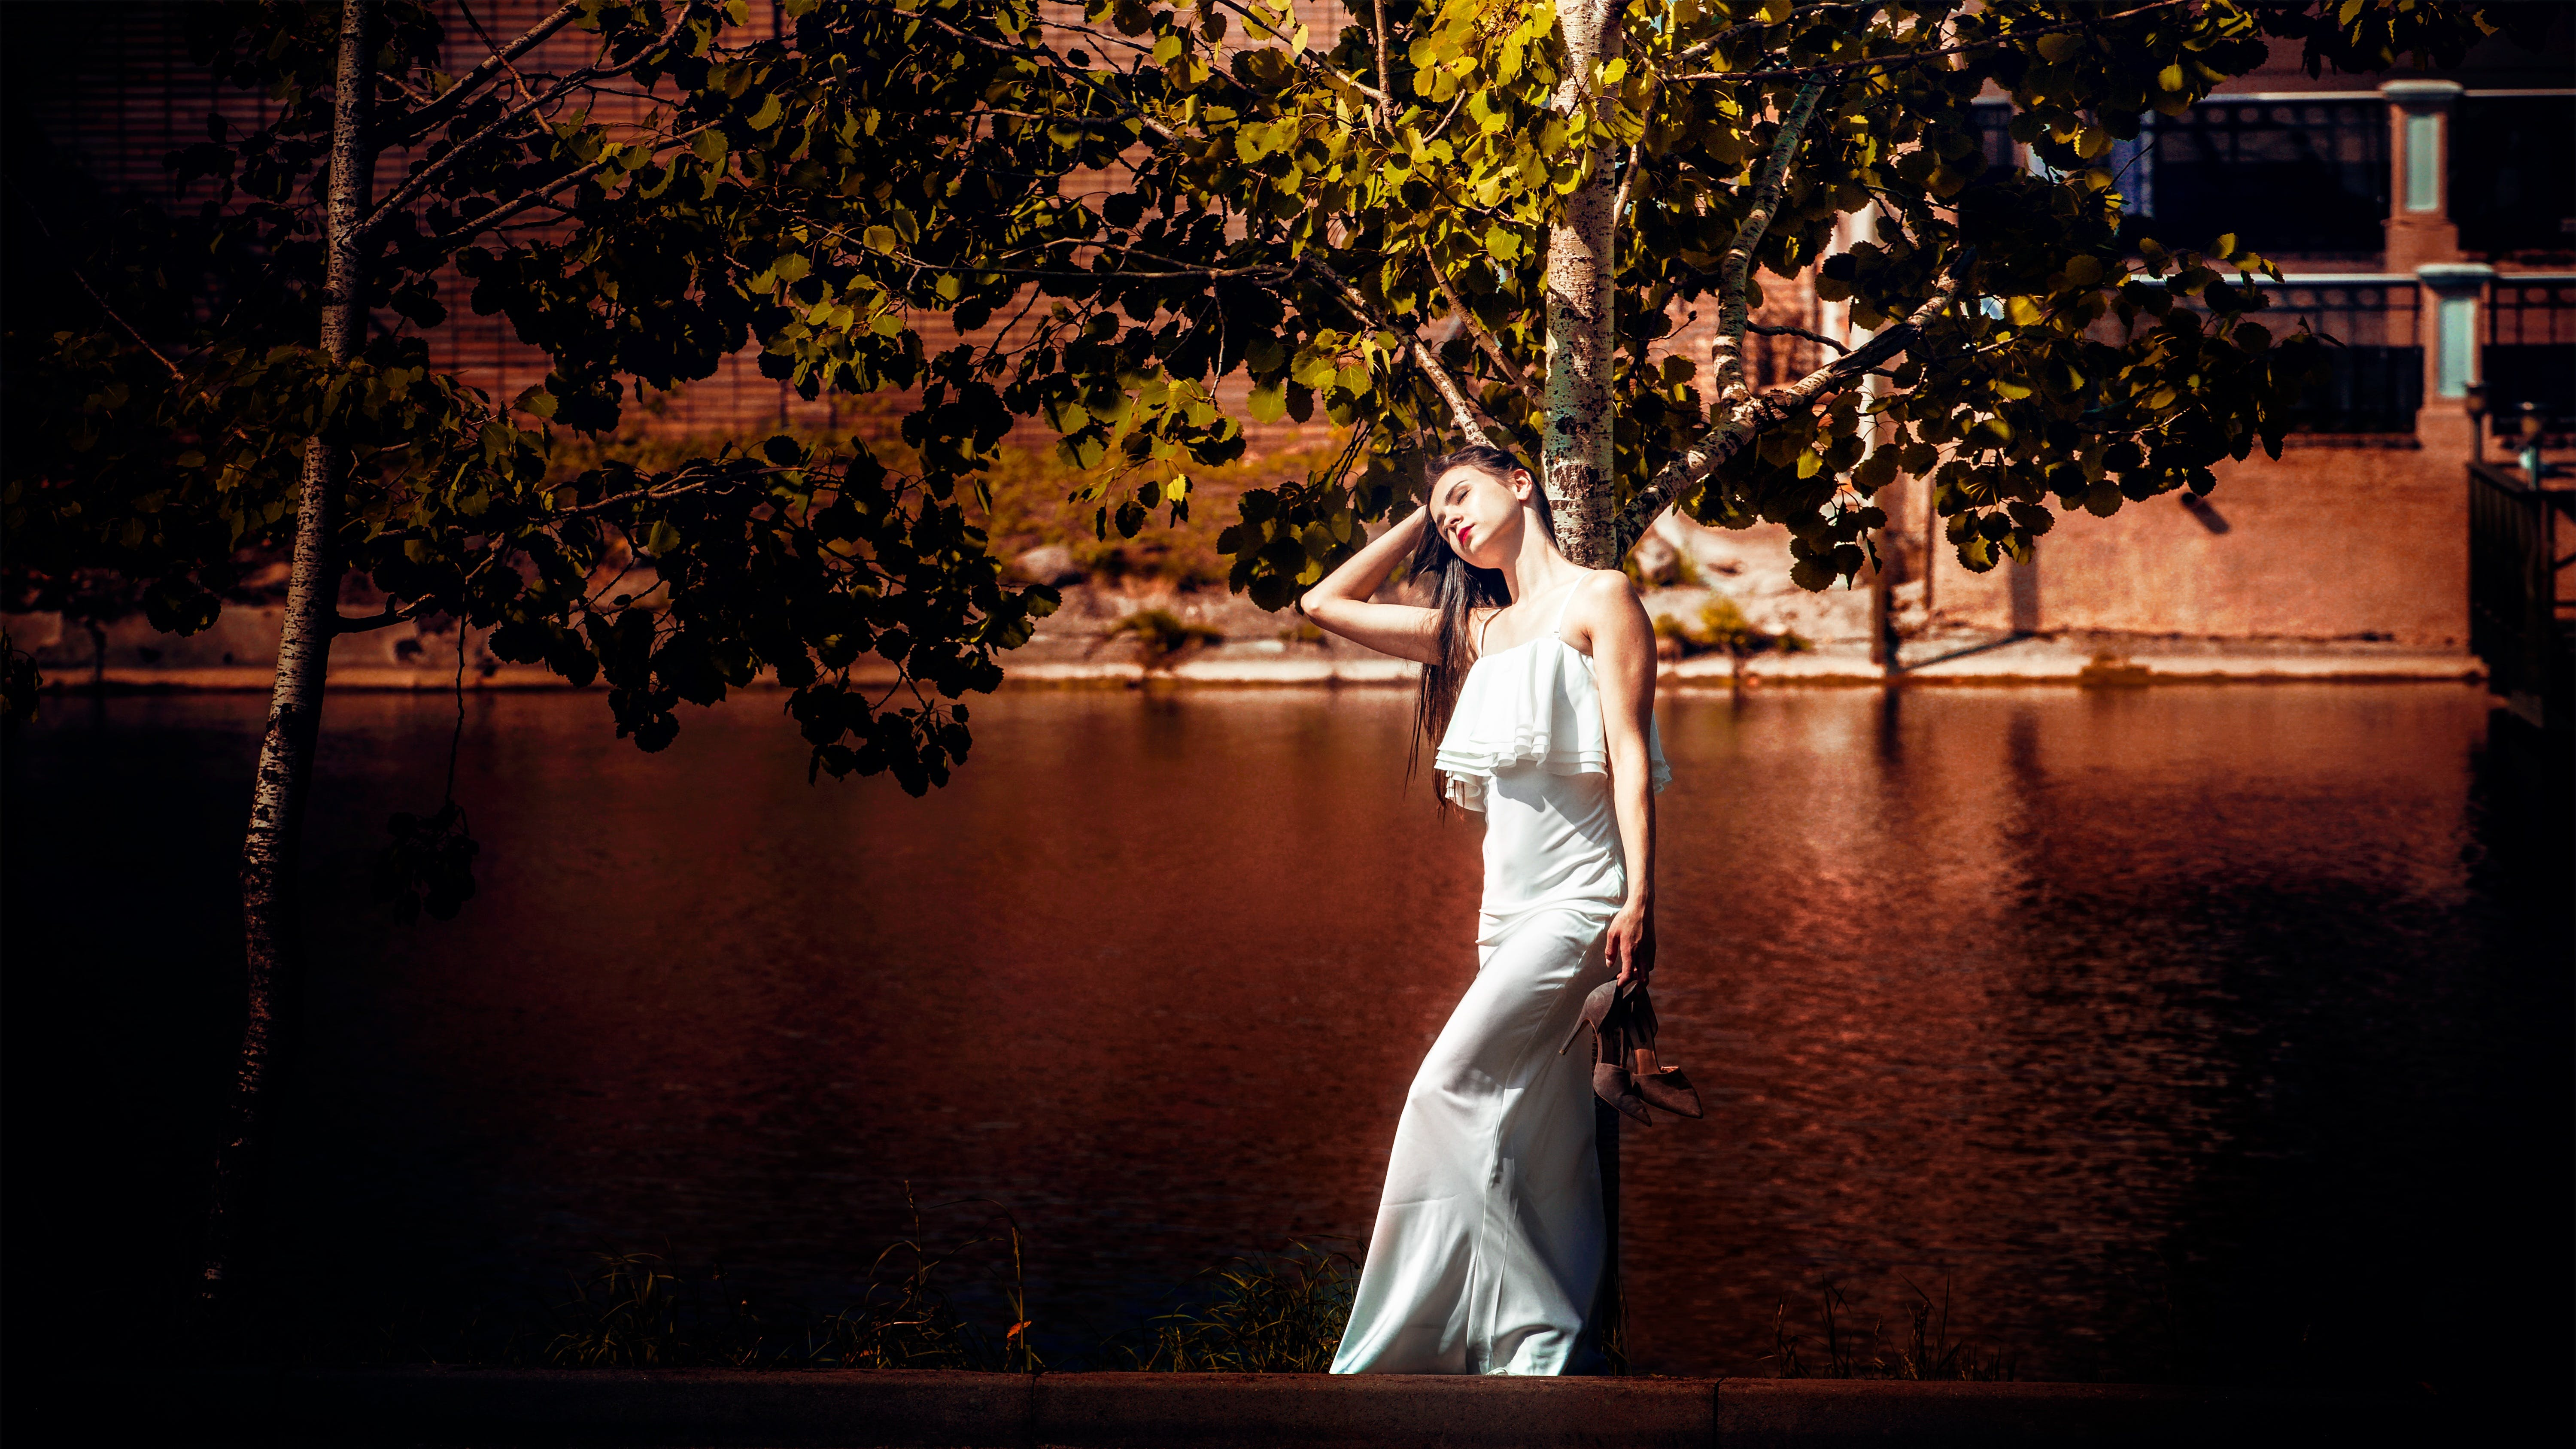 Woman Stand Beside Tree and Body of Water